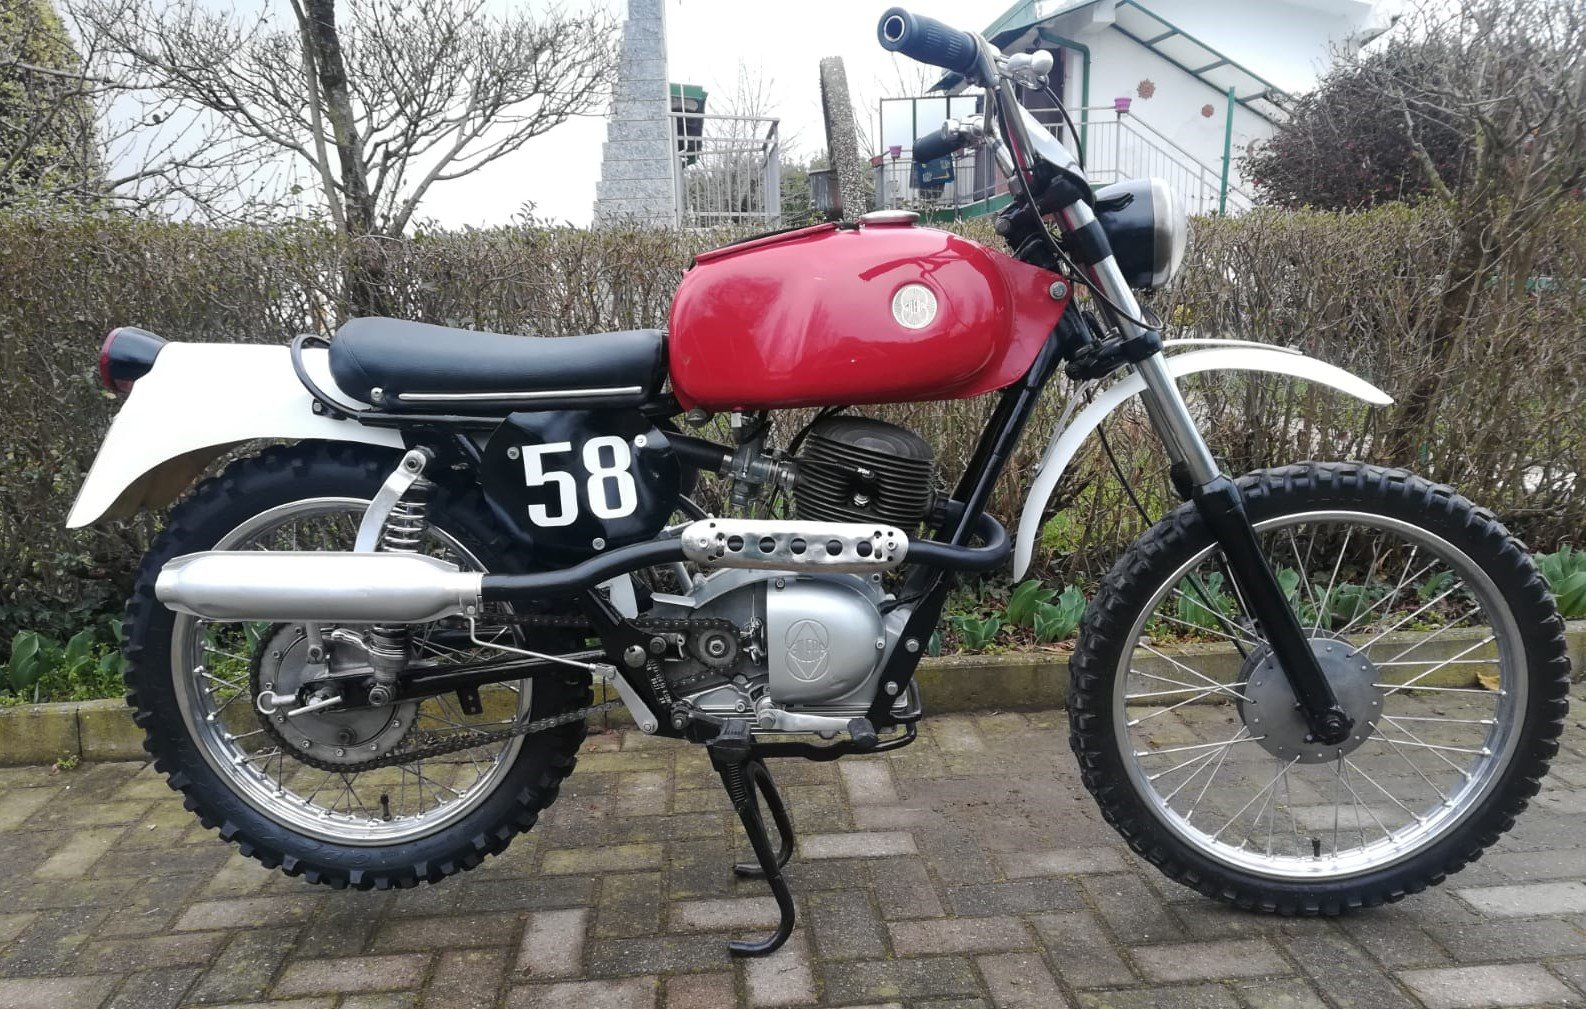 1972 Gilera 124cc Regolarita' Competizione For Sale (picture 1 of 6)